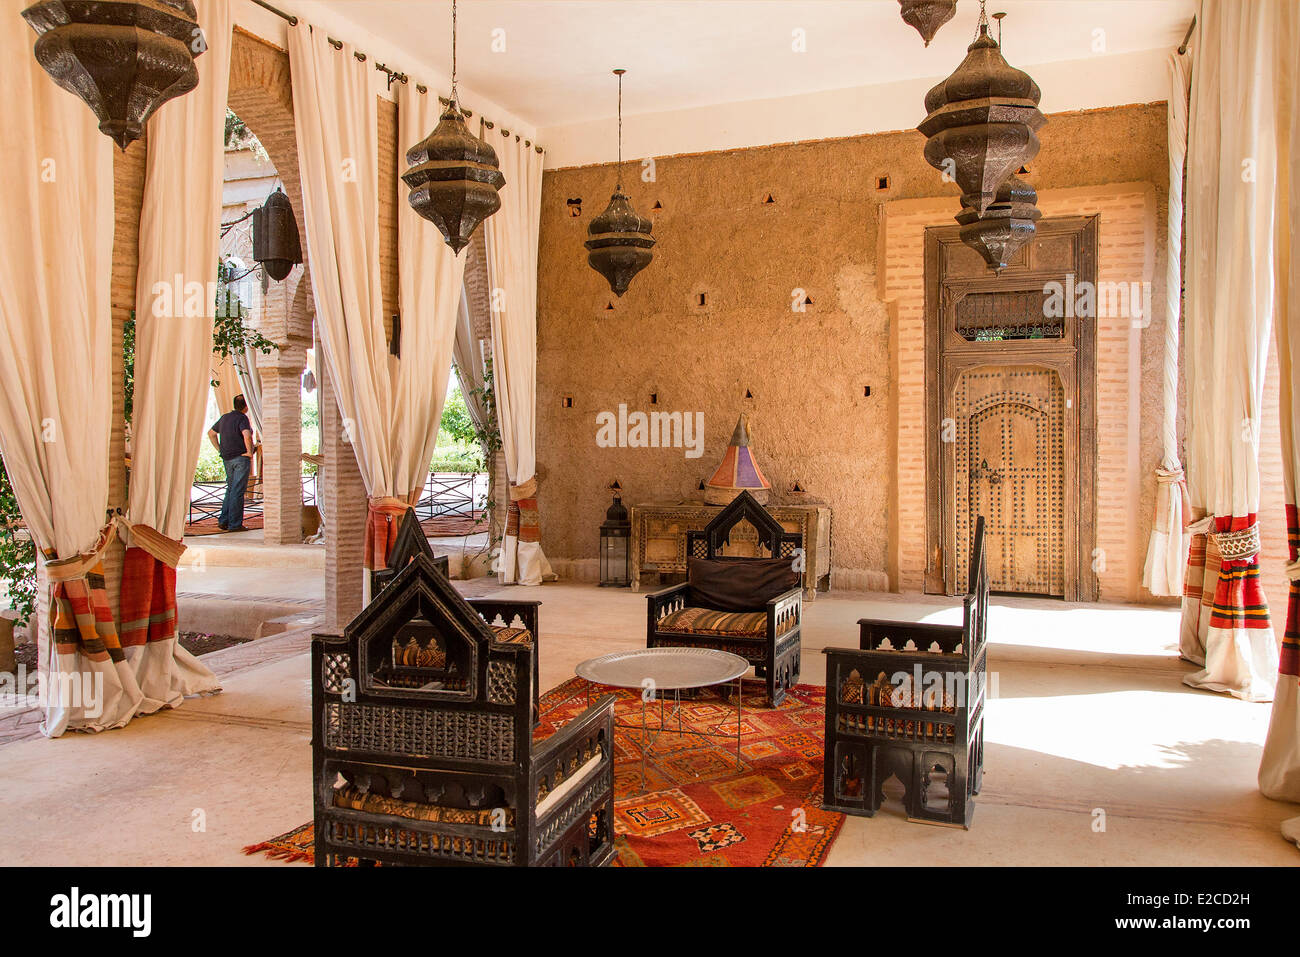 Morocco, High Atlas, Marrakesh, Imperial City, the Beldi Country Club Stock Photo